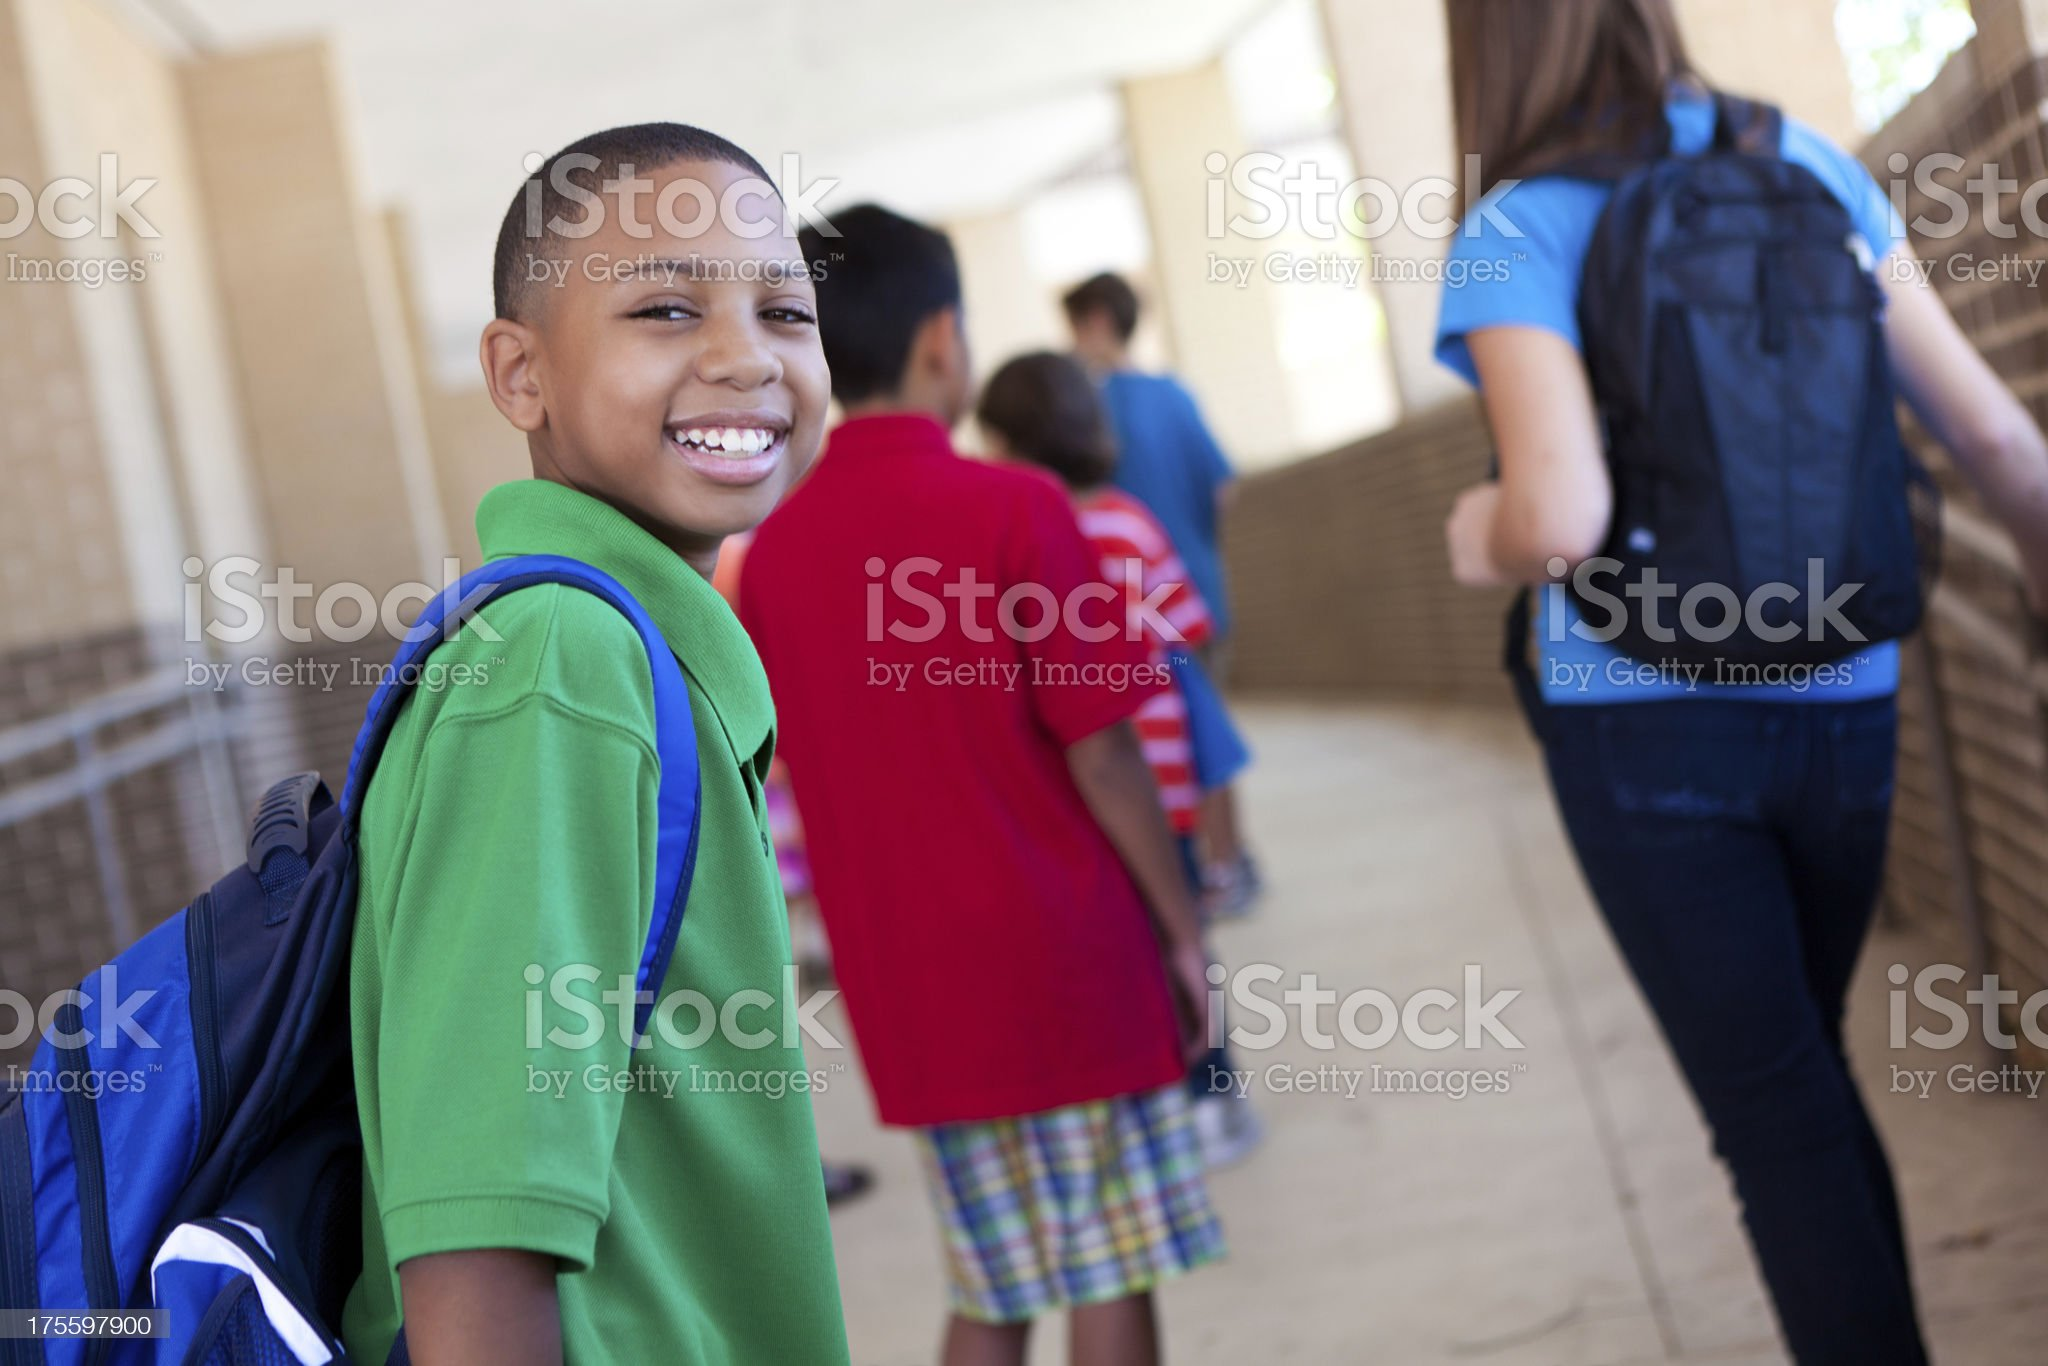 Smiling young boy at school with other students royalty-free stock photo